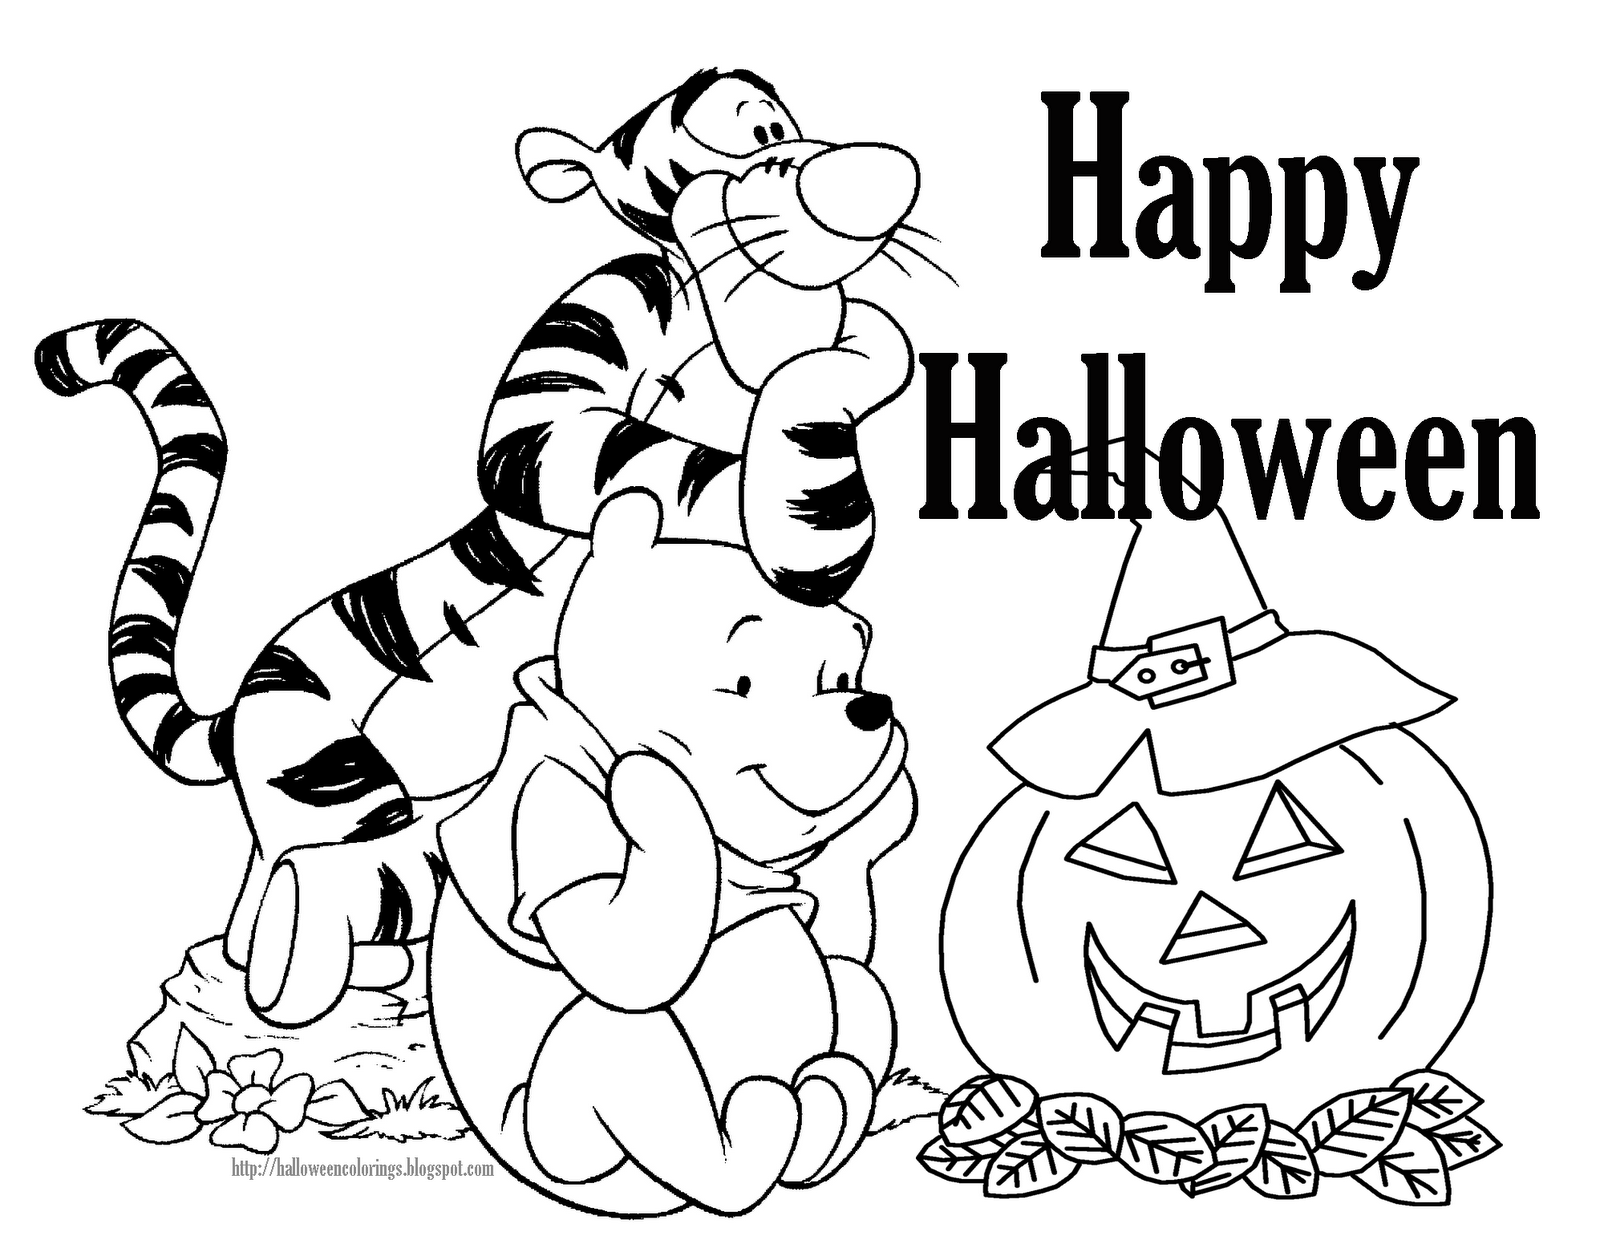 halloween color pages printable rookie saturday printable halloween coloring pages color halloween pages printable